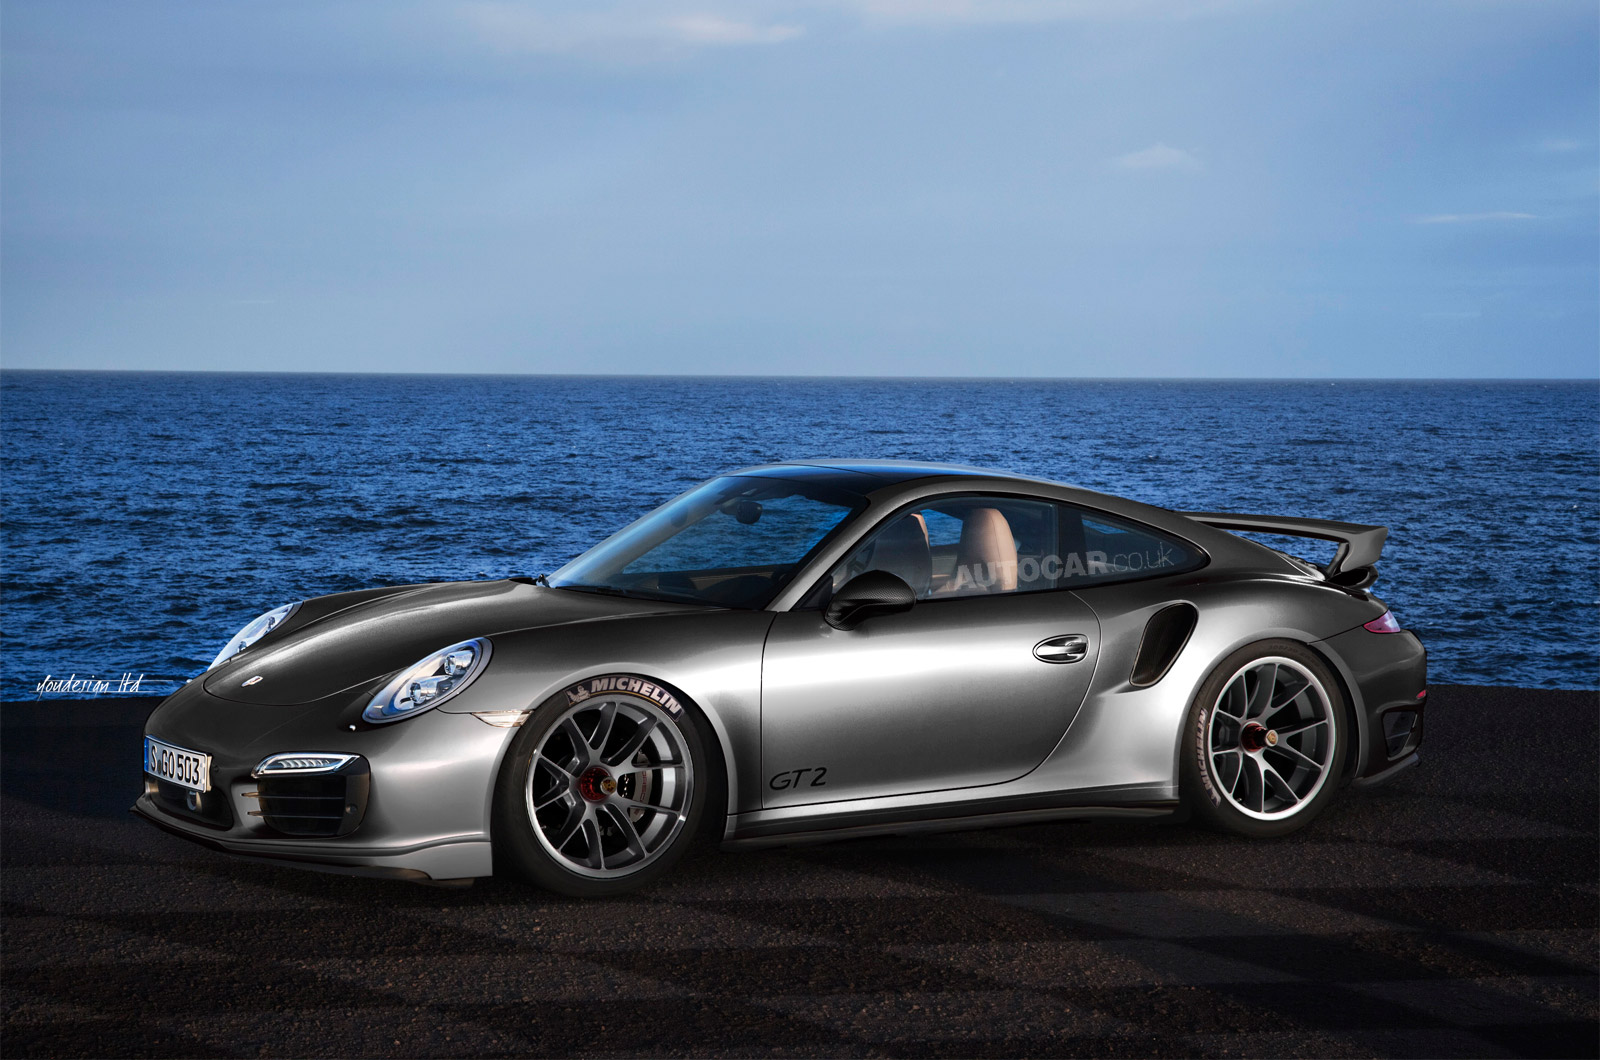 Porsche 991 911 GT2 to Feature 552hp Flat-Six and hit 200mph Wallpapers HD